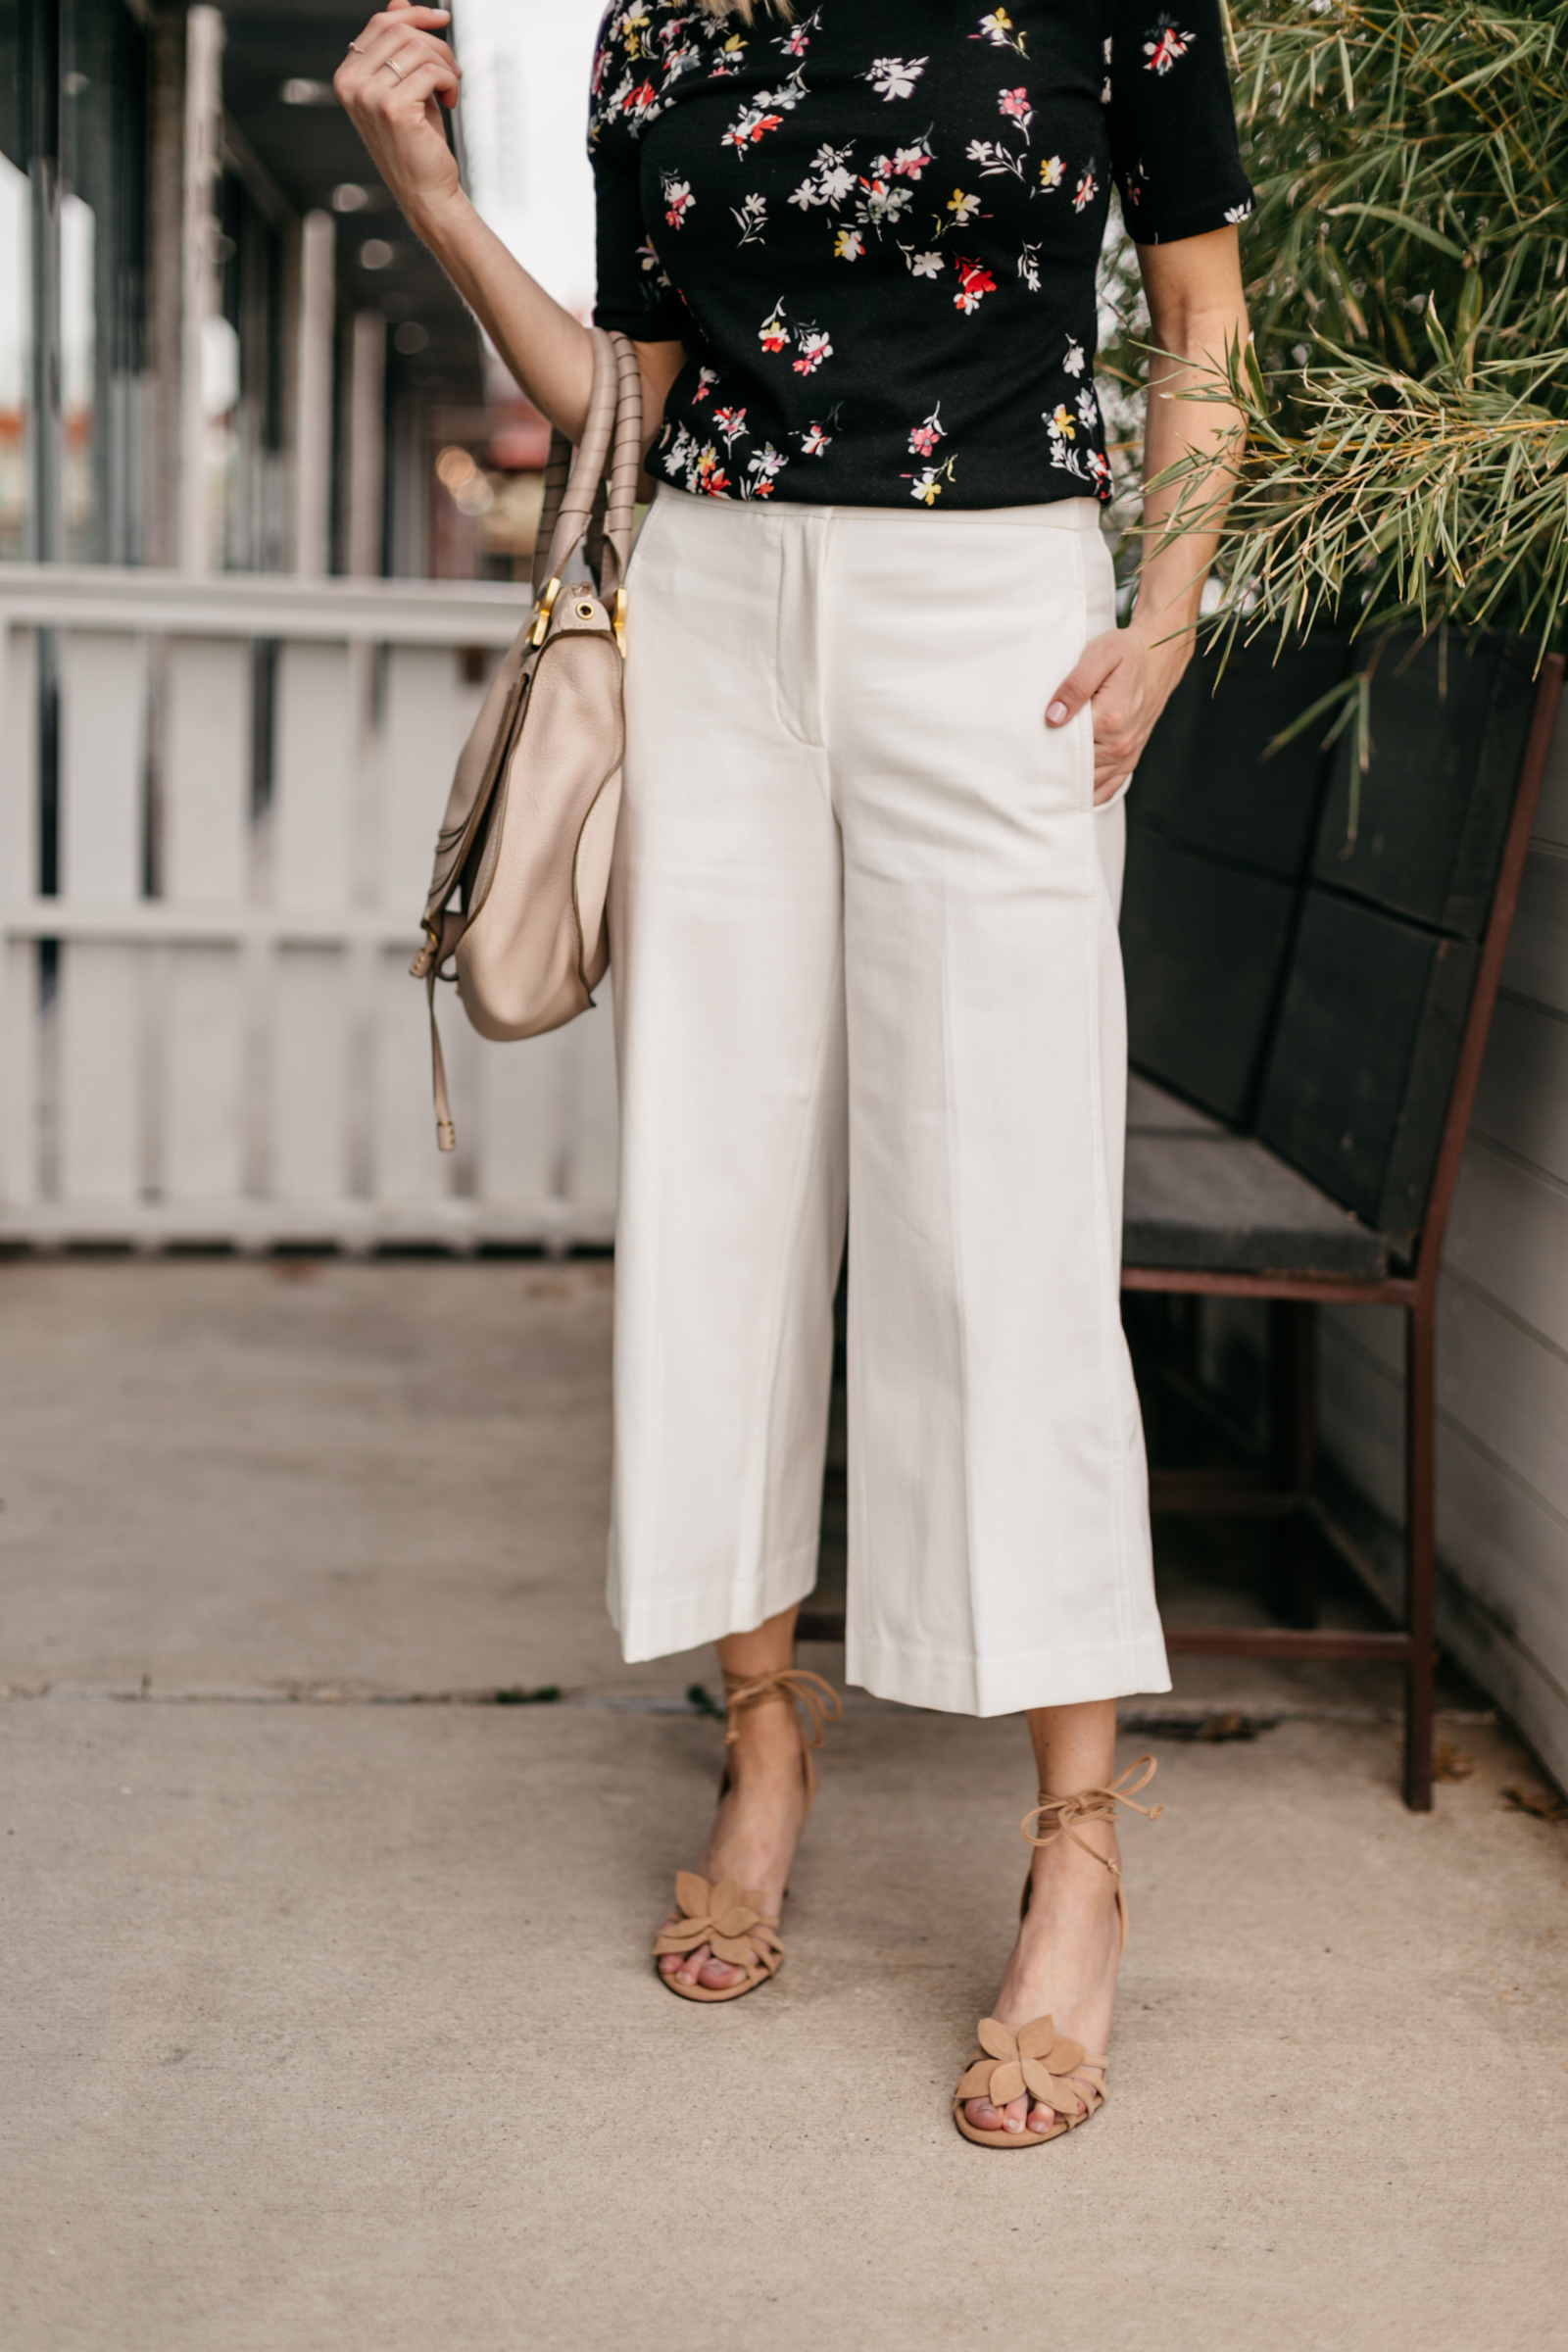 One Small Blonde is featuring a Floral Mock Neck Top and The Wide Leg Marina Pant from Ann Taylor